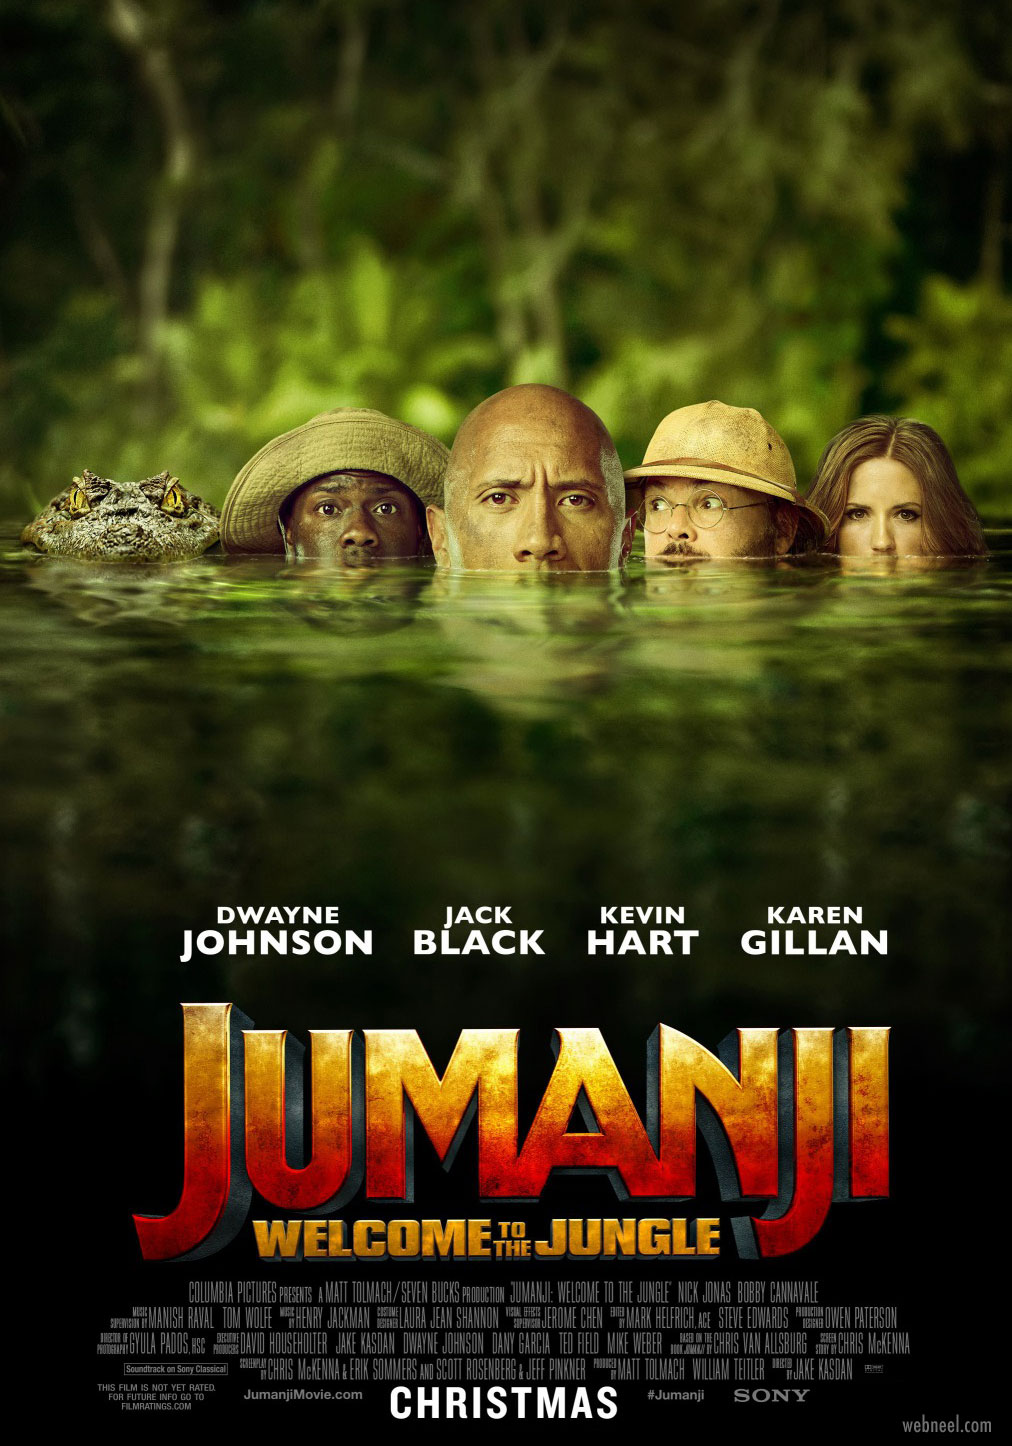 movie poster design jumanji piqued